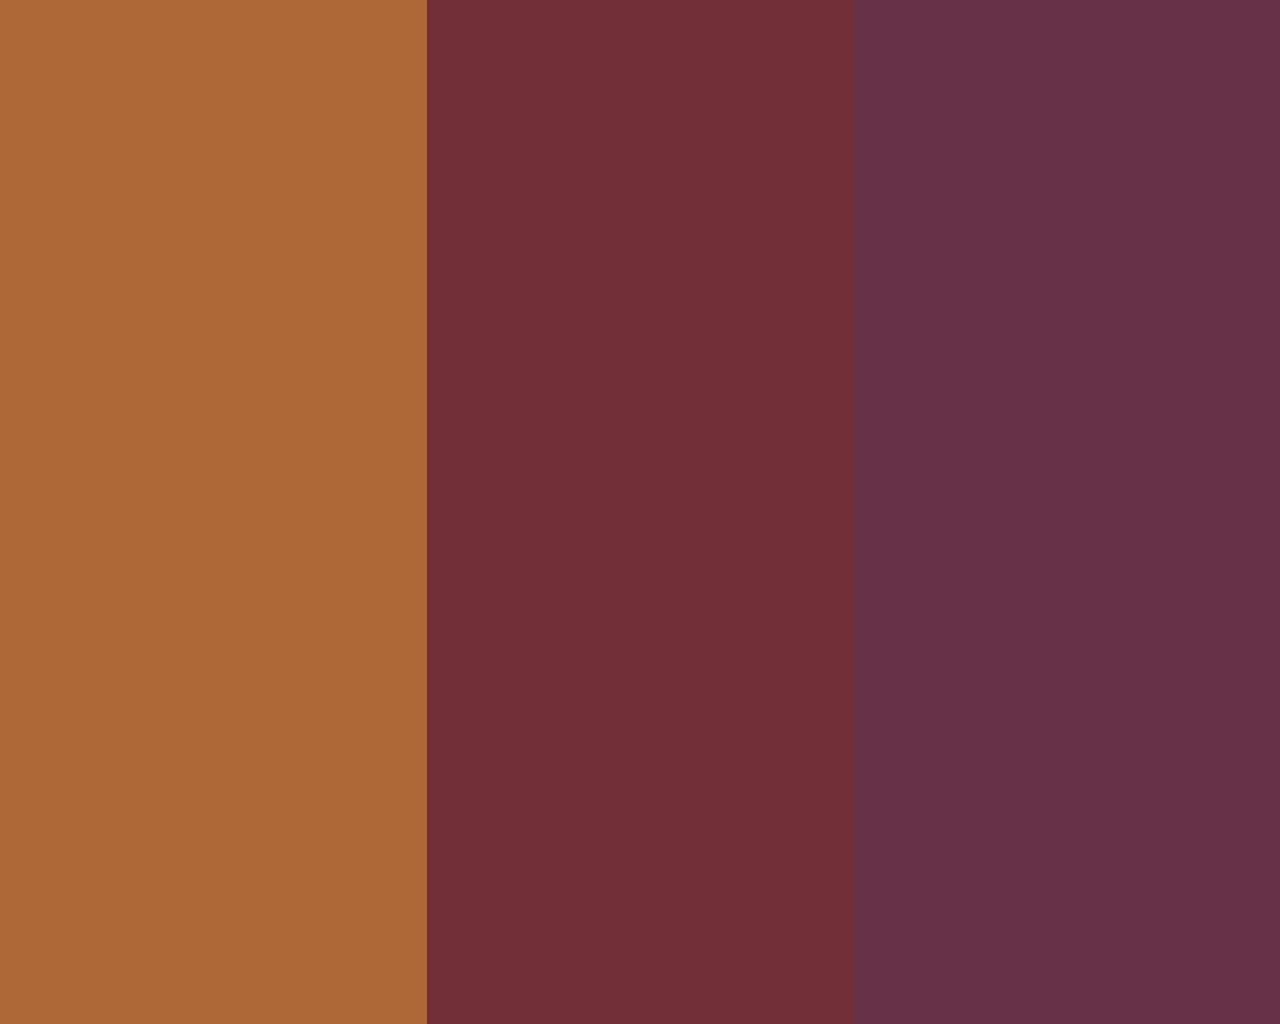 1280x1024 Windsor Tan Wine and Wine Dregs Three Color Background 1280x1024